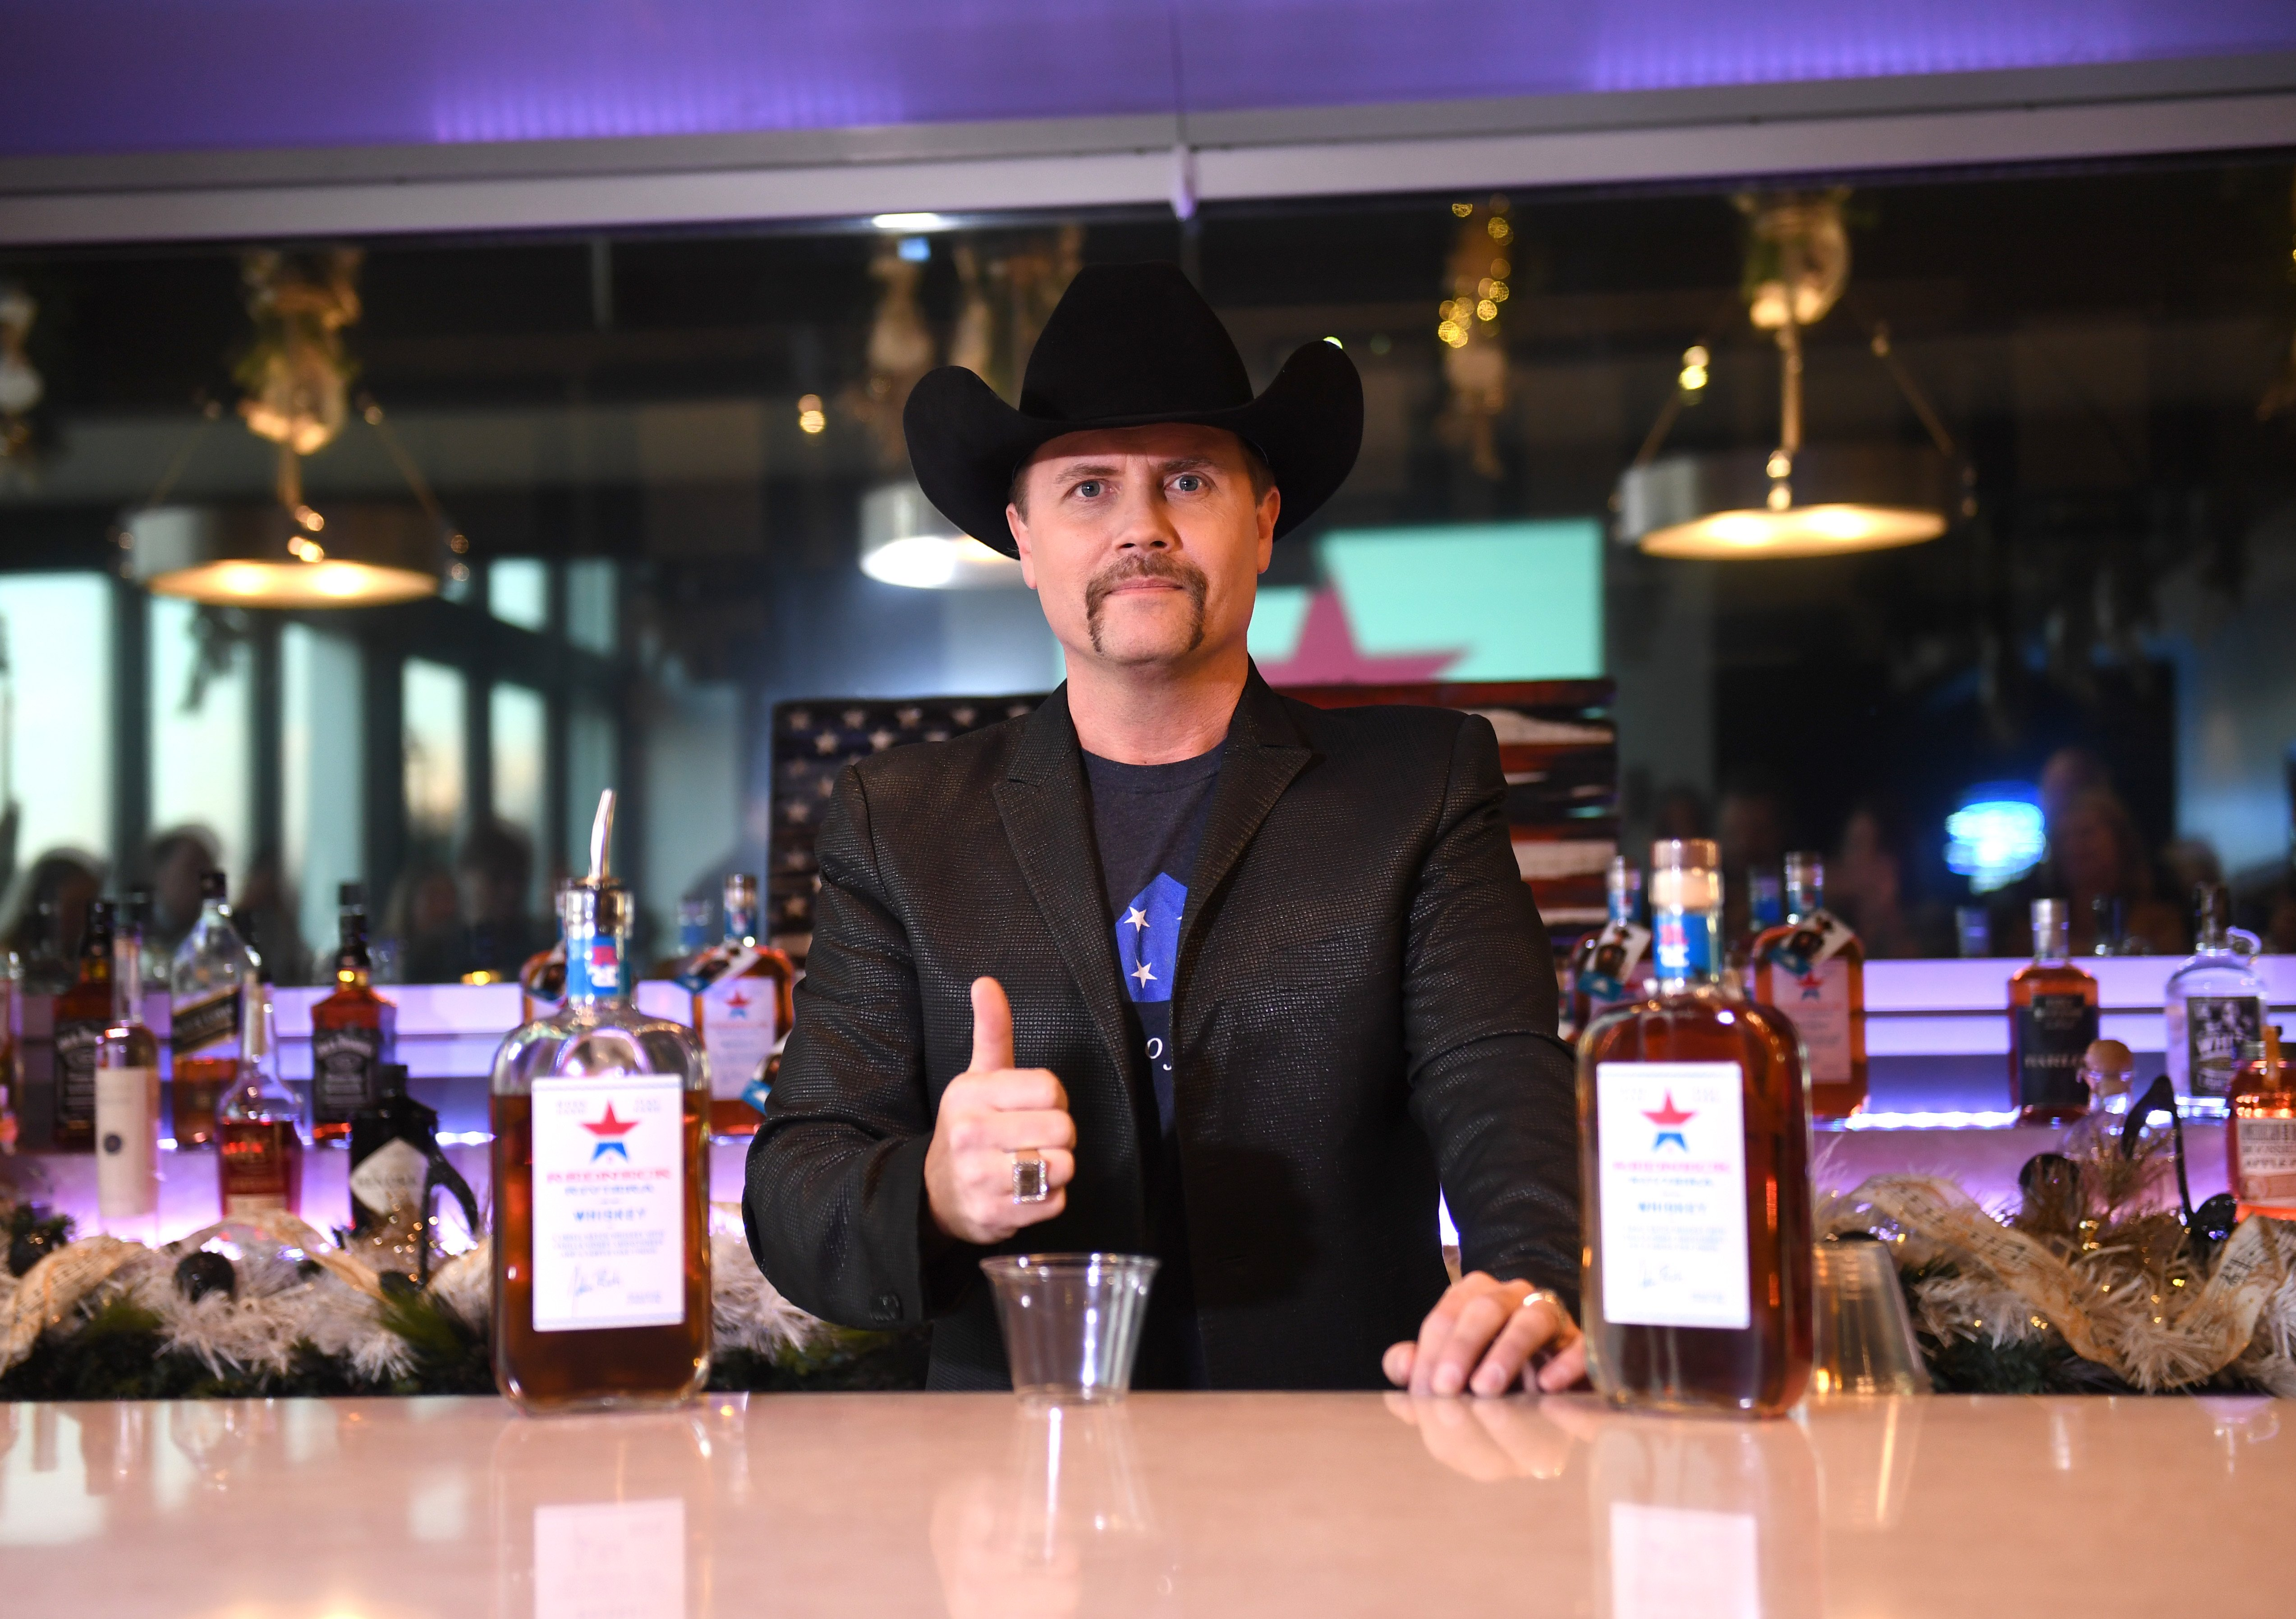 John Rich of the band Big & Rich is seen at Mount Richmore on January 05, 2019 in Nashville, Tennessee. | Source: Getty Images